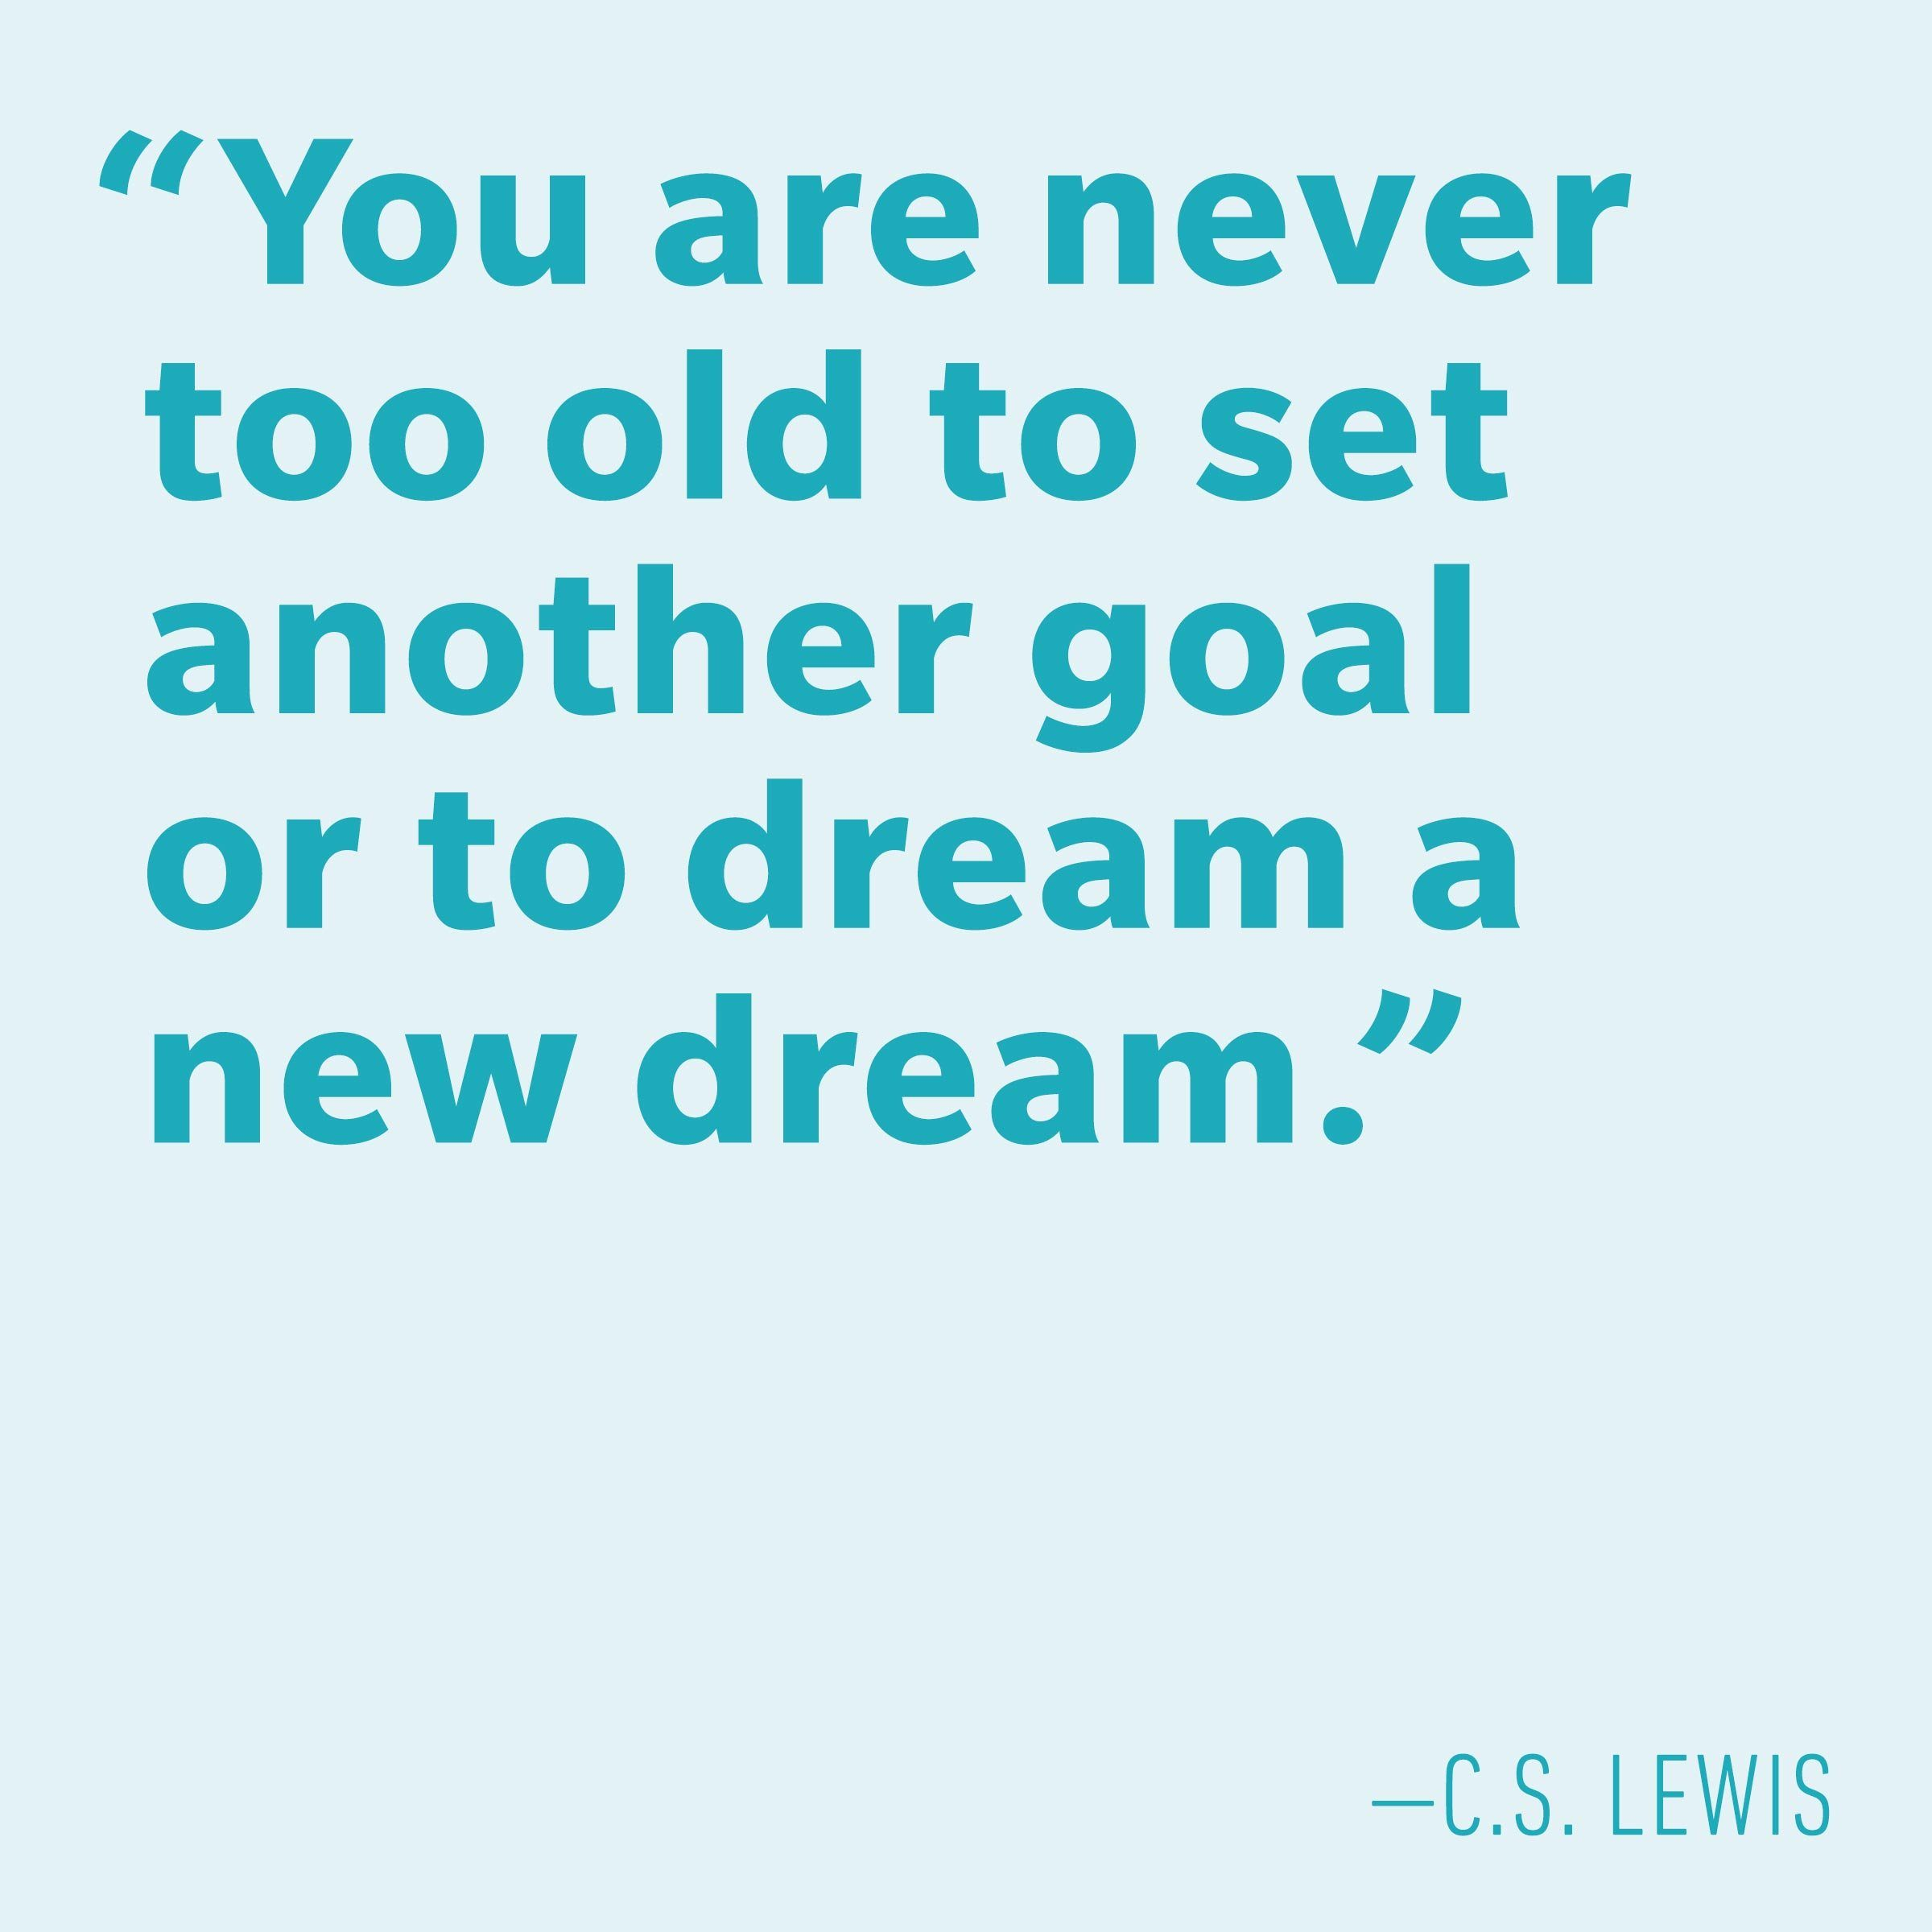 Motivational quotes - C.S. Lewis